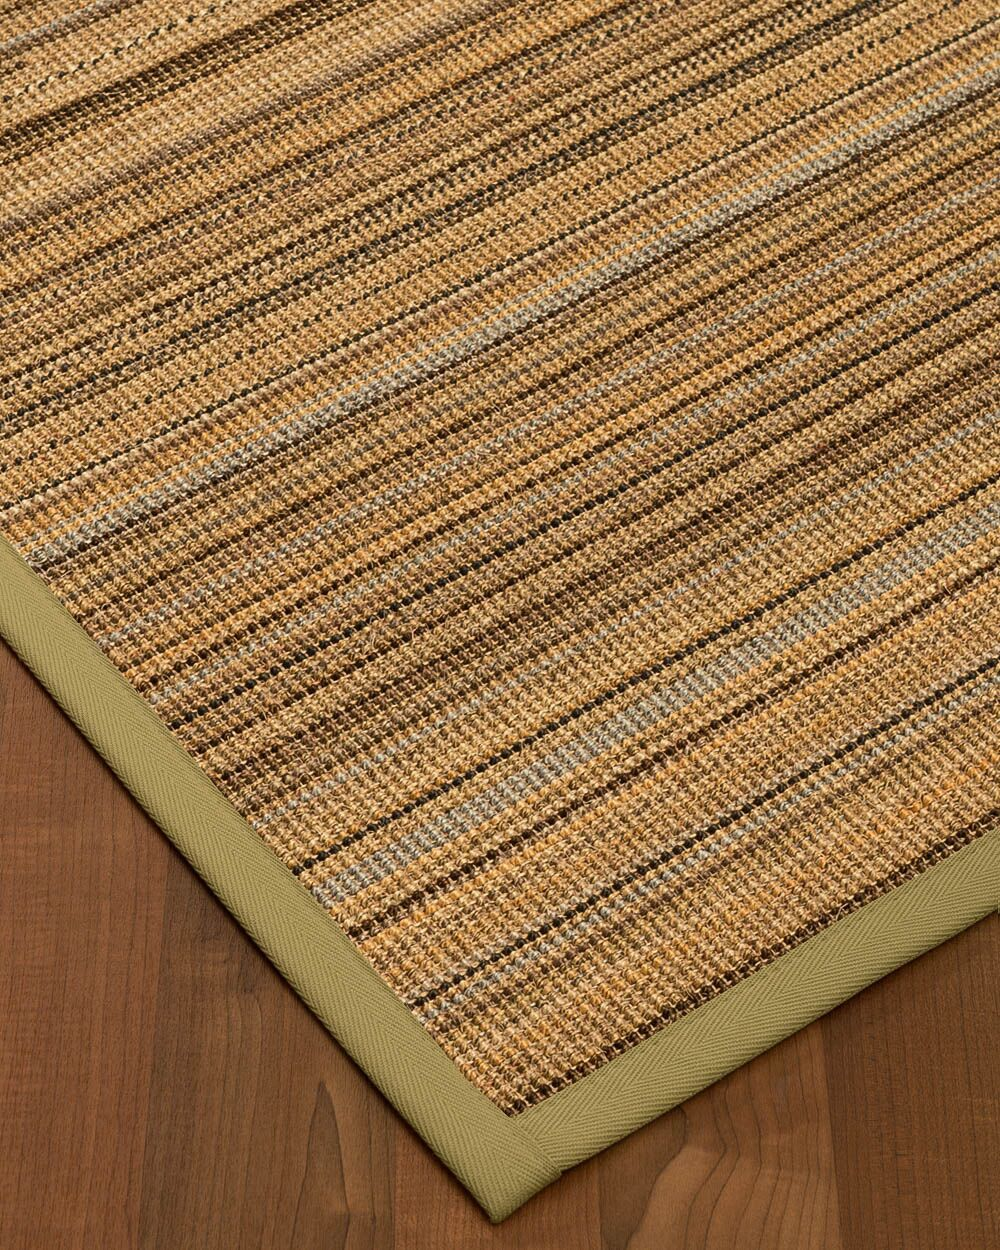 Troyer Hand-Woven Beige Area Rug Rug Size: Rectangle 8' x 10'